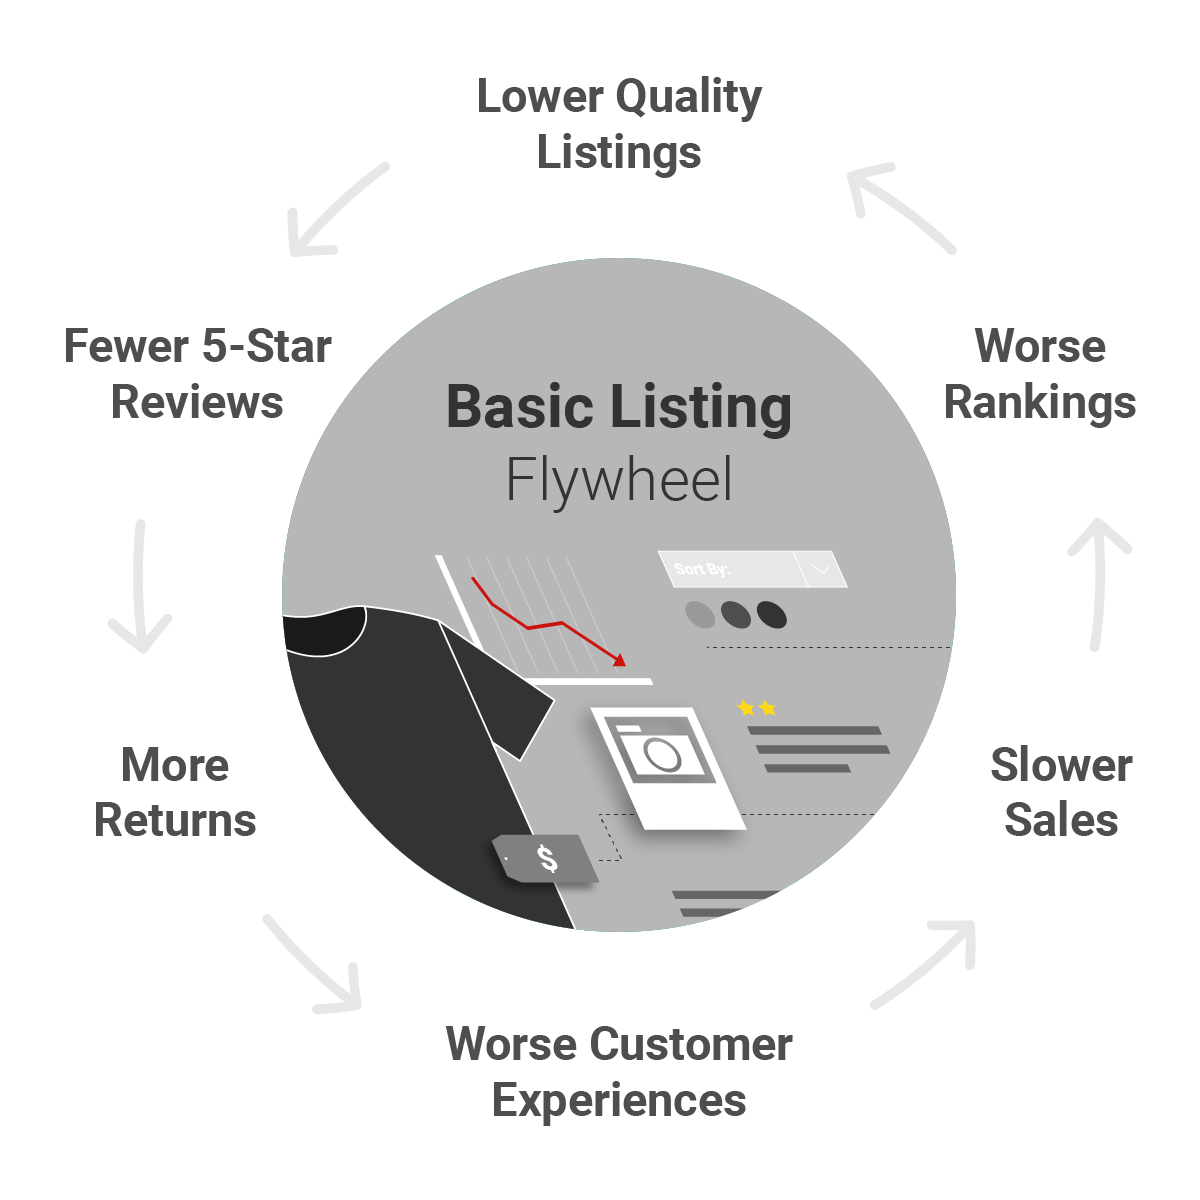 image of a negative listing quality flywheel